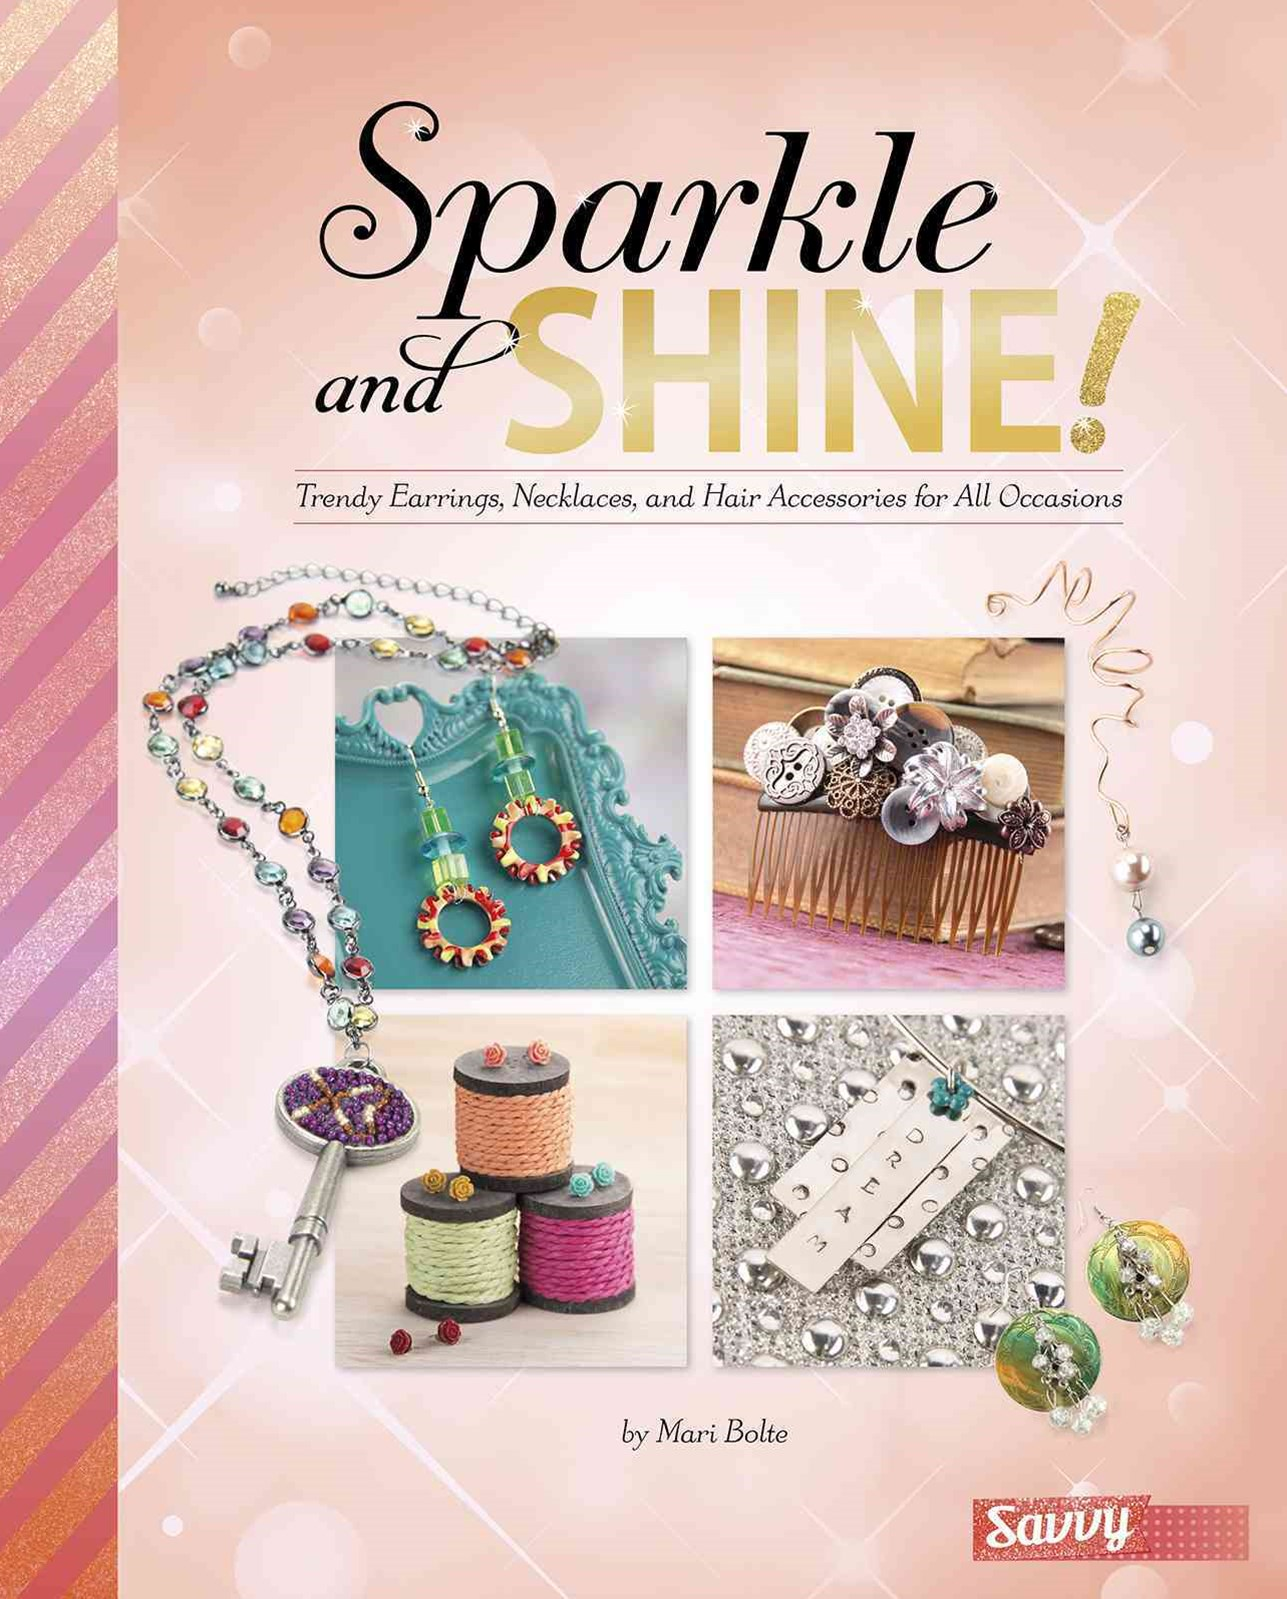 Sparkle and Shine!